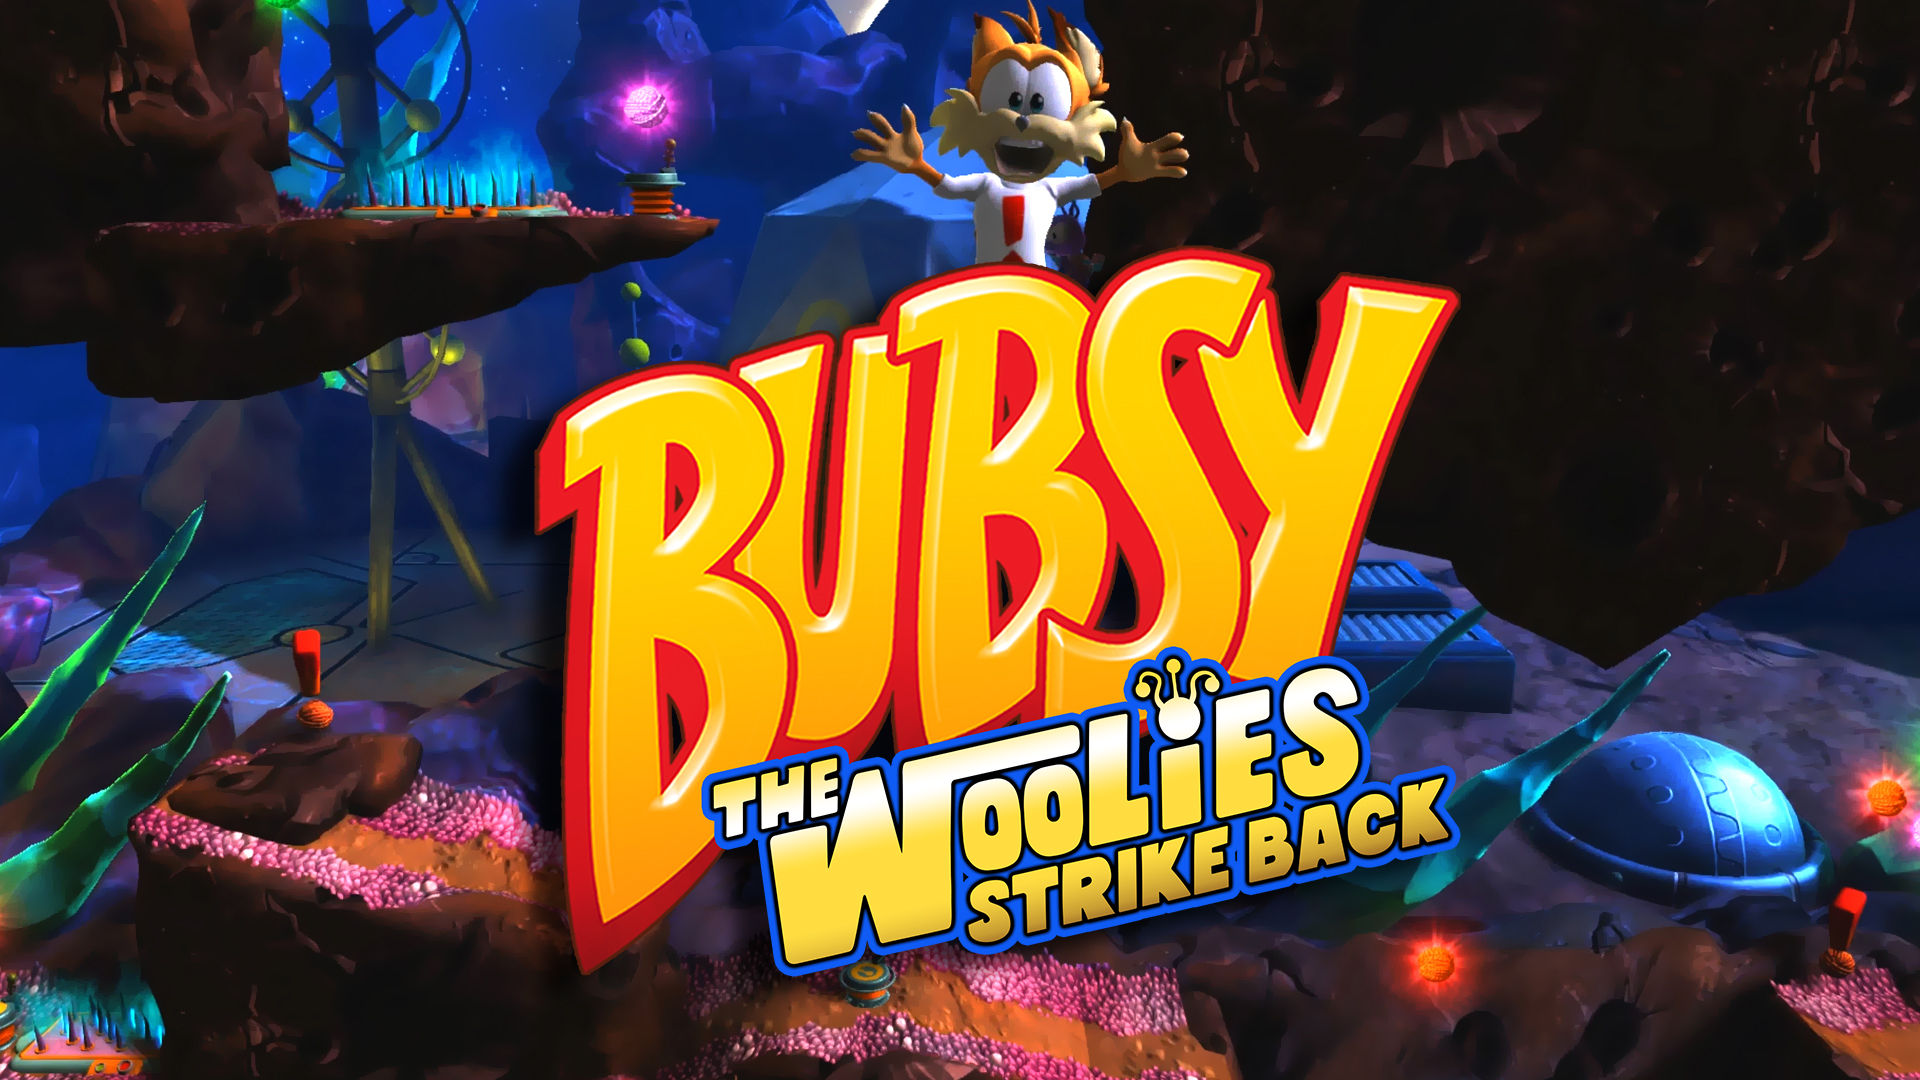 Bubsy: The Woolies Strike Back set to release this October screenshot